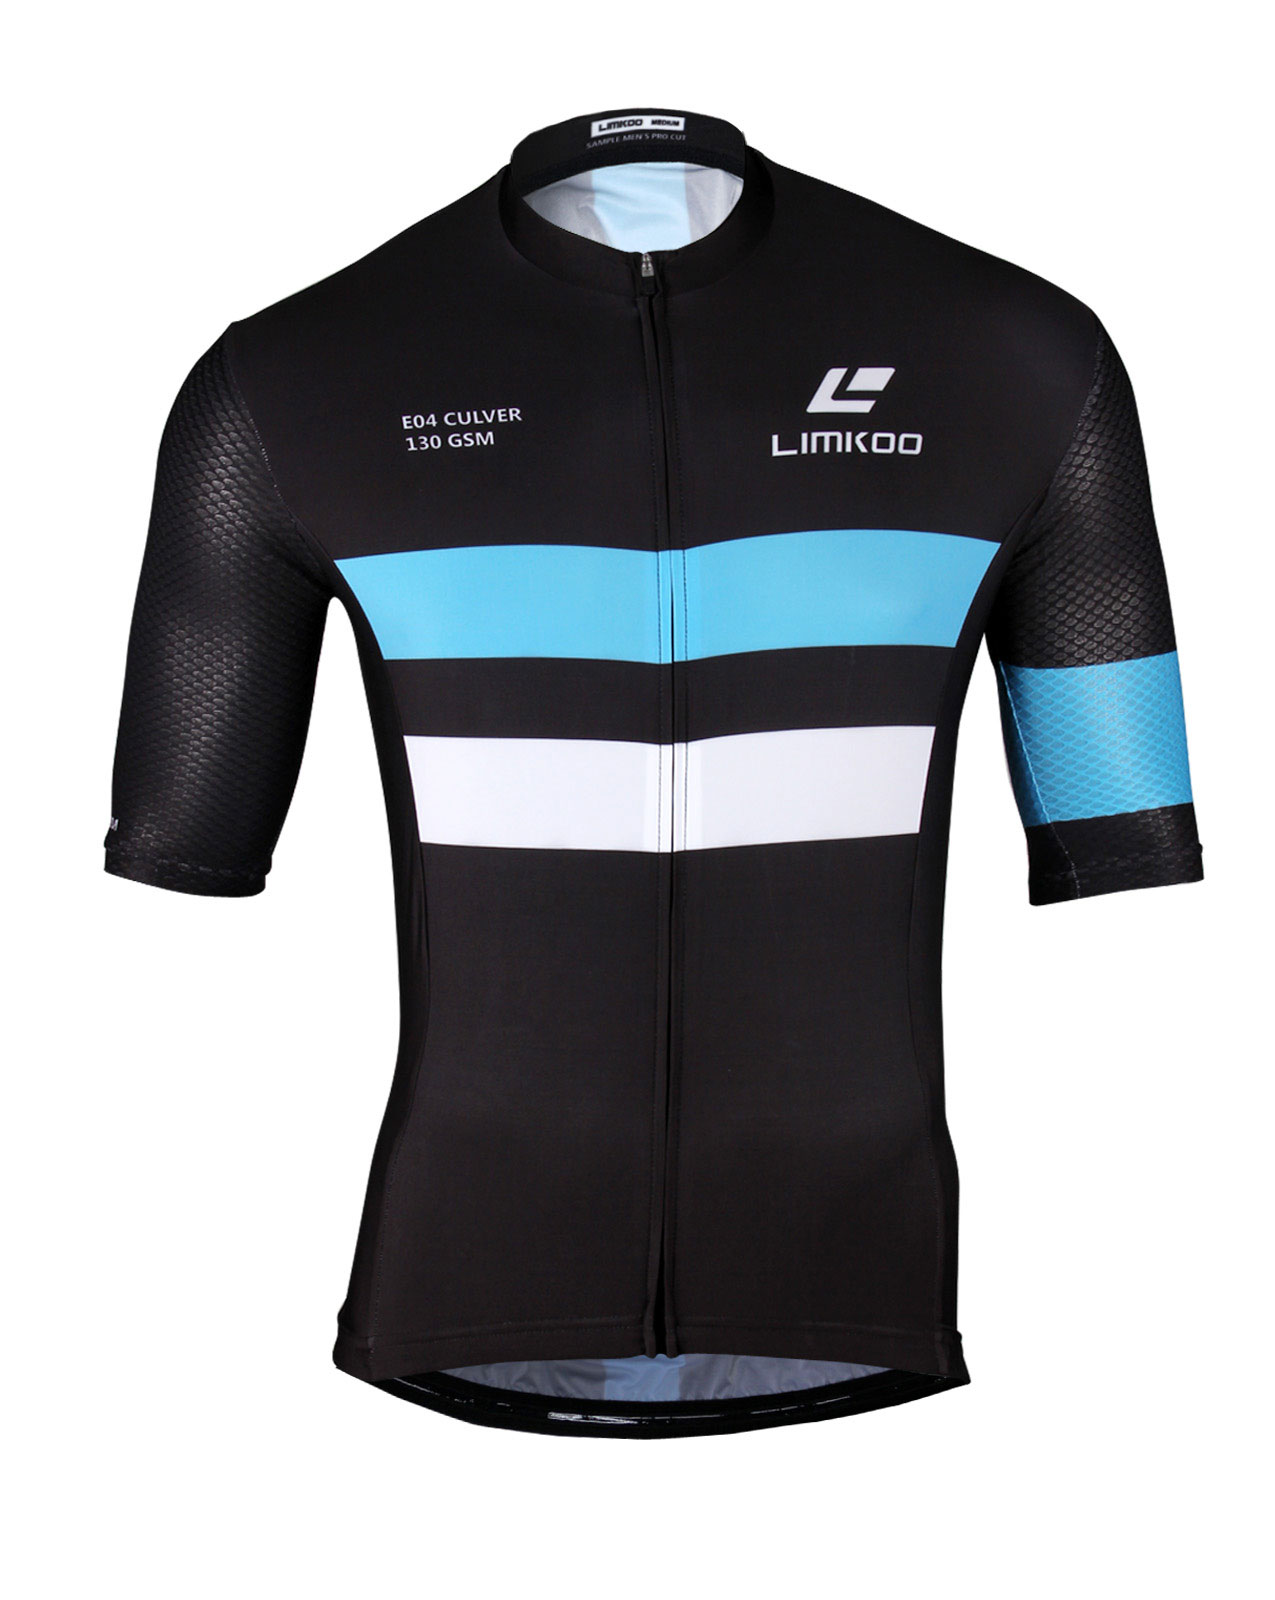 Italian CULVER Cycling Pro Race Jersey